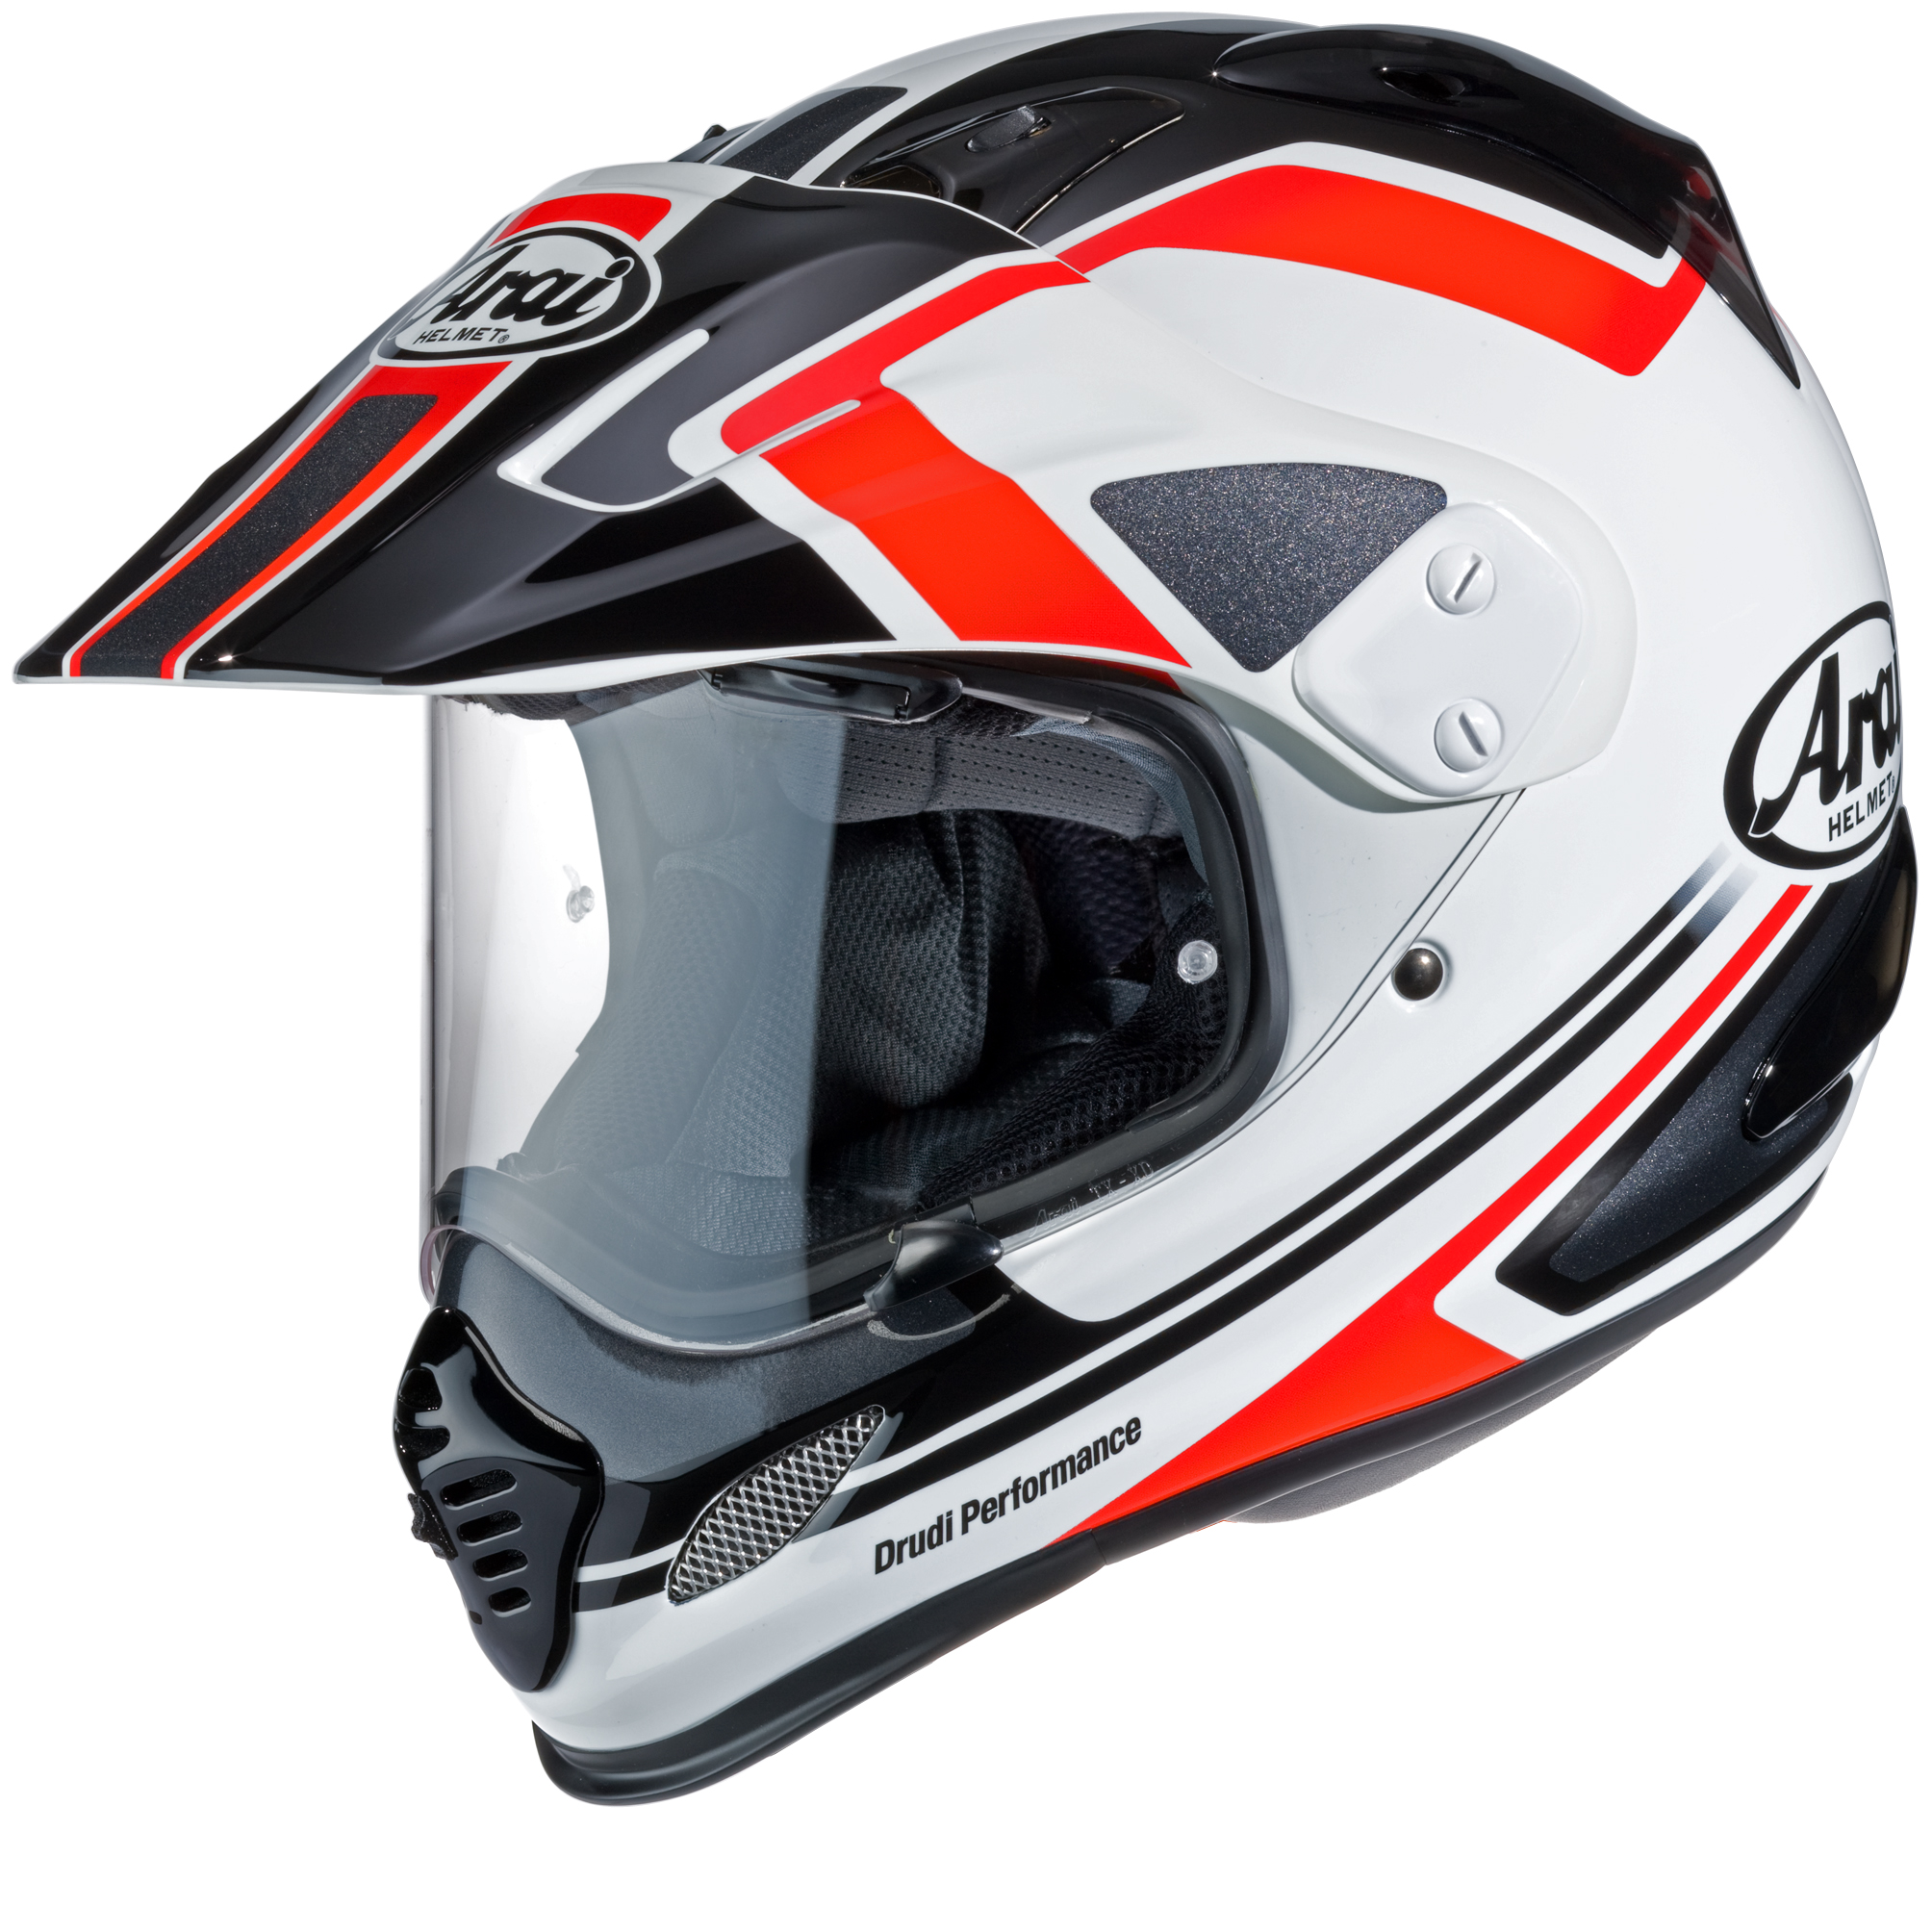 new arai tour x 4 helmet visordown. Black Bedroom Furniture Sets. Home Design Ideas